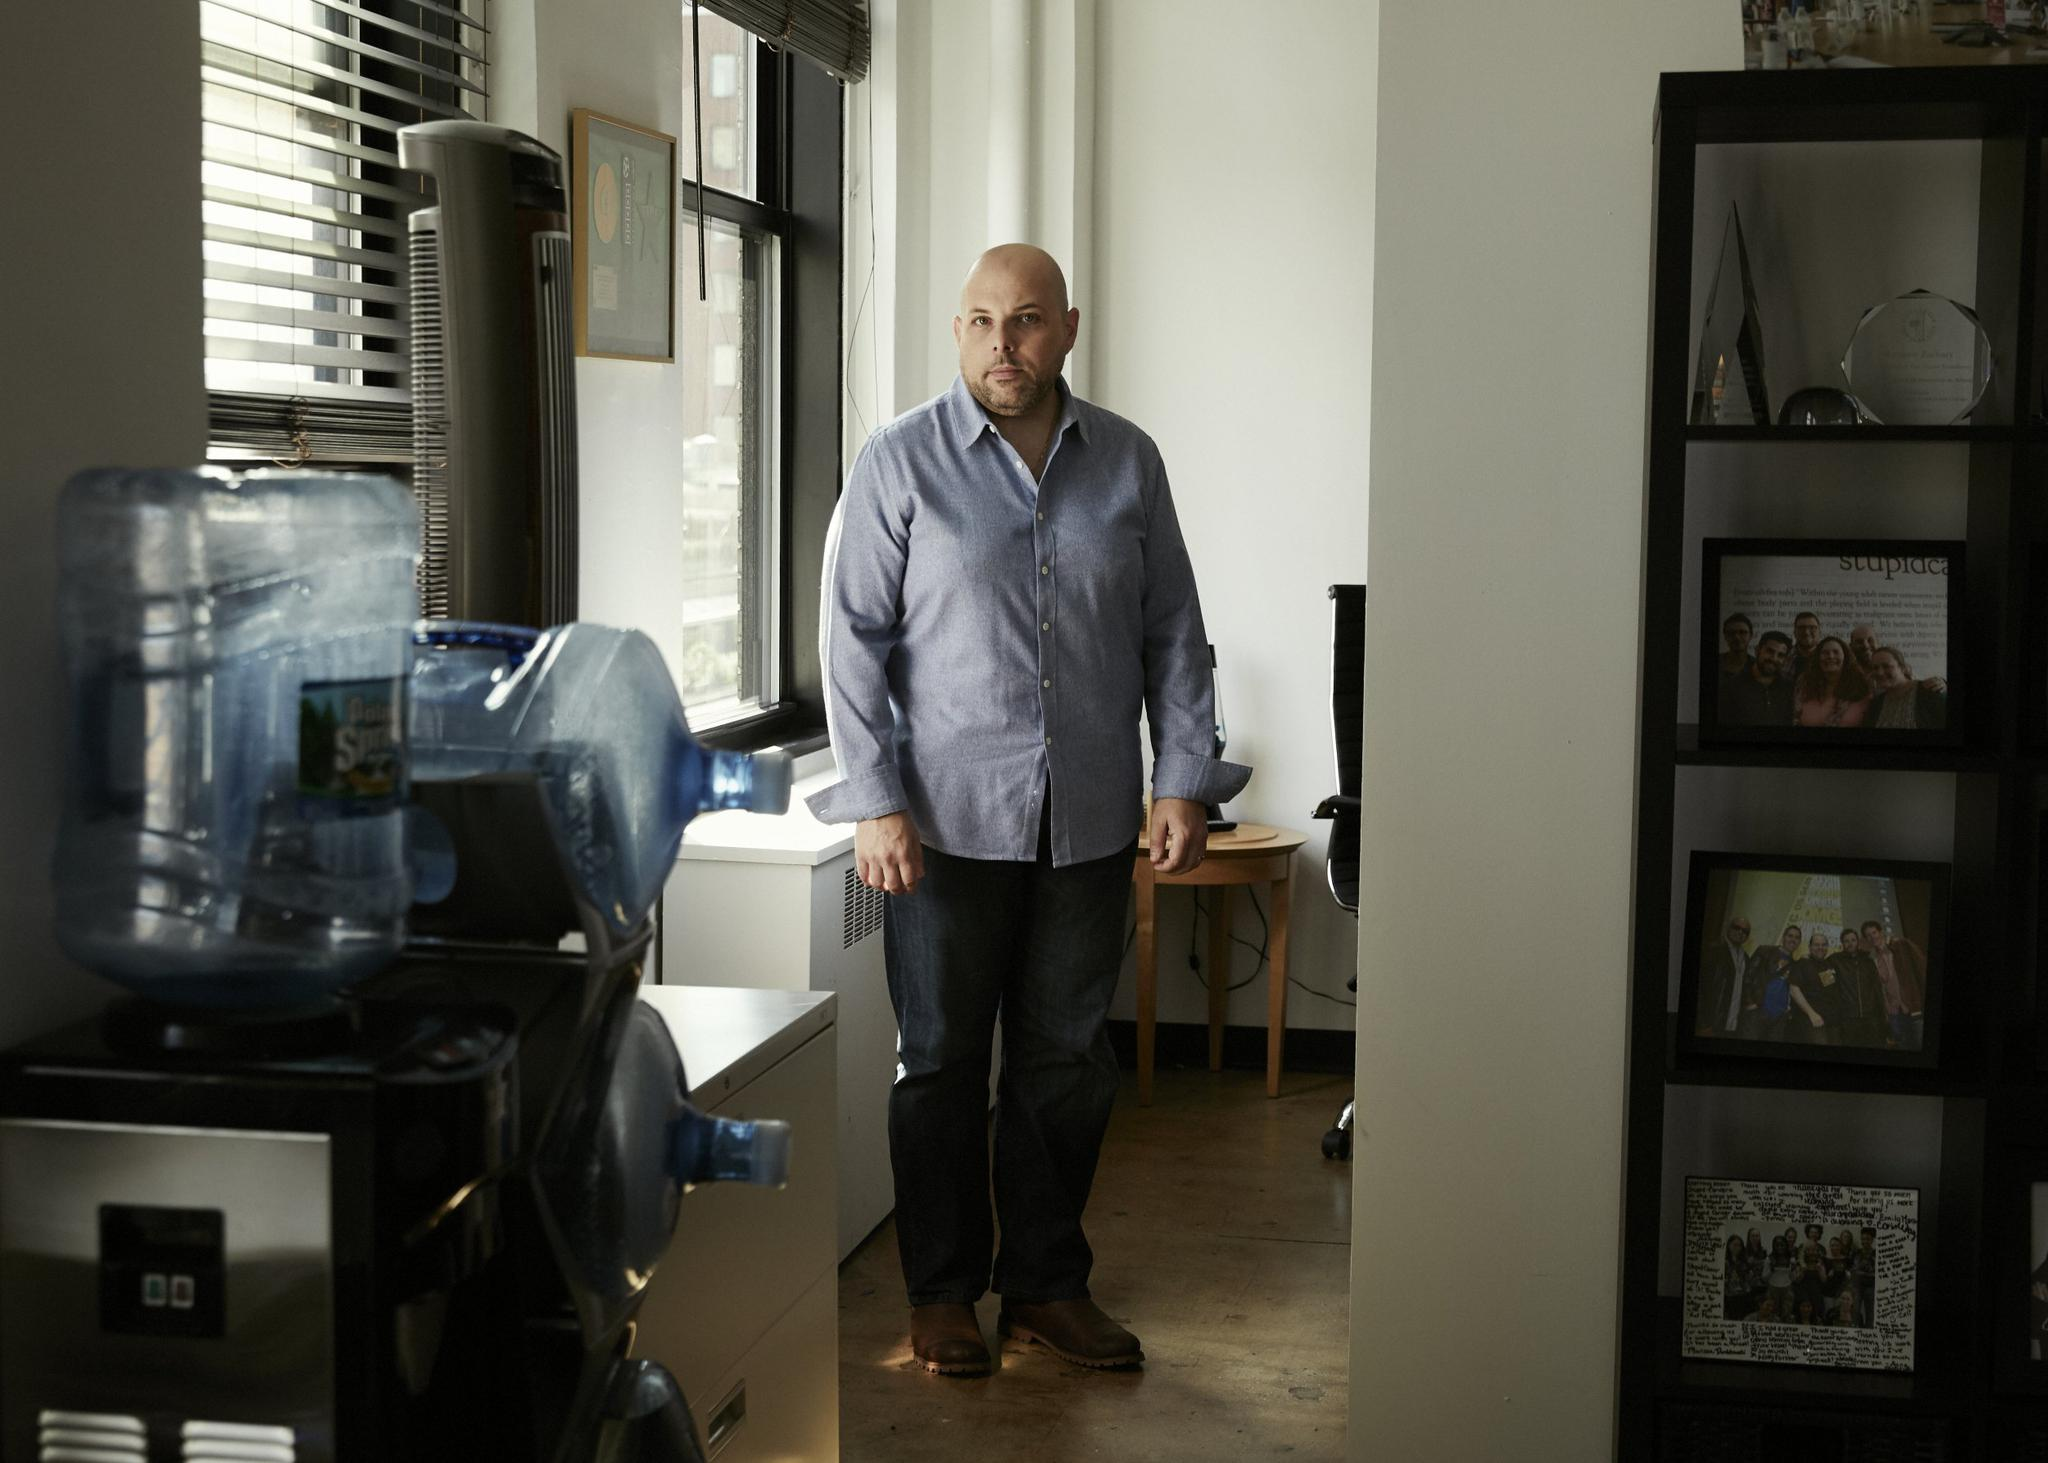 Matthew Zachary poses in the meeting room of Stupid Cancer's office in Tribeca, New York.